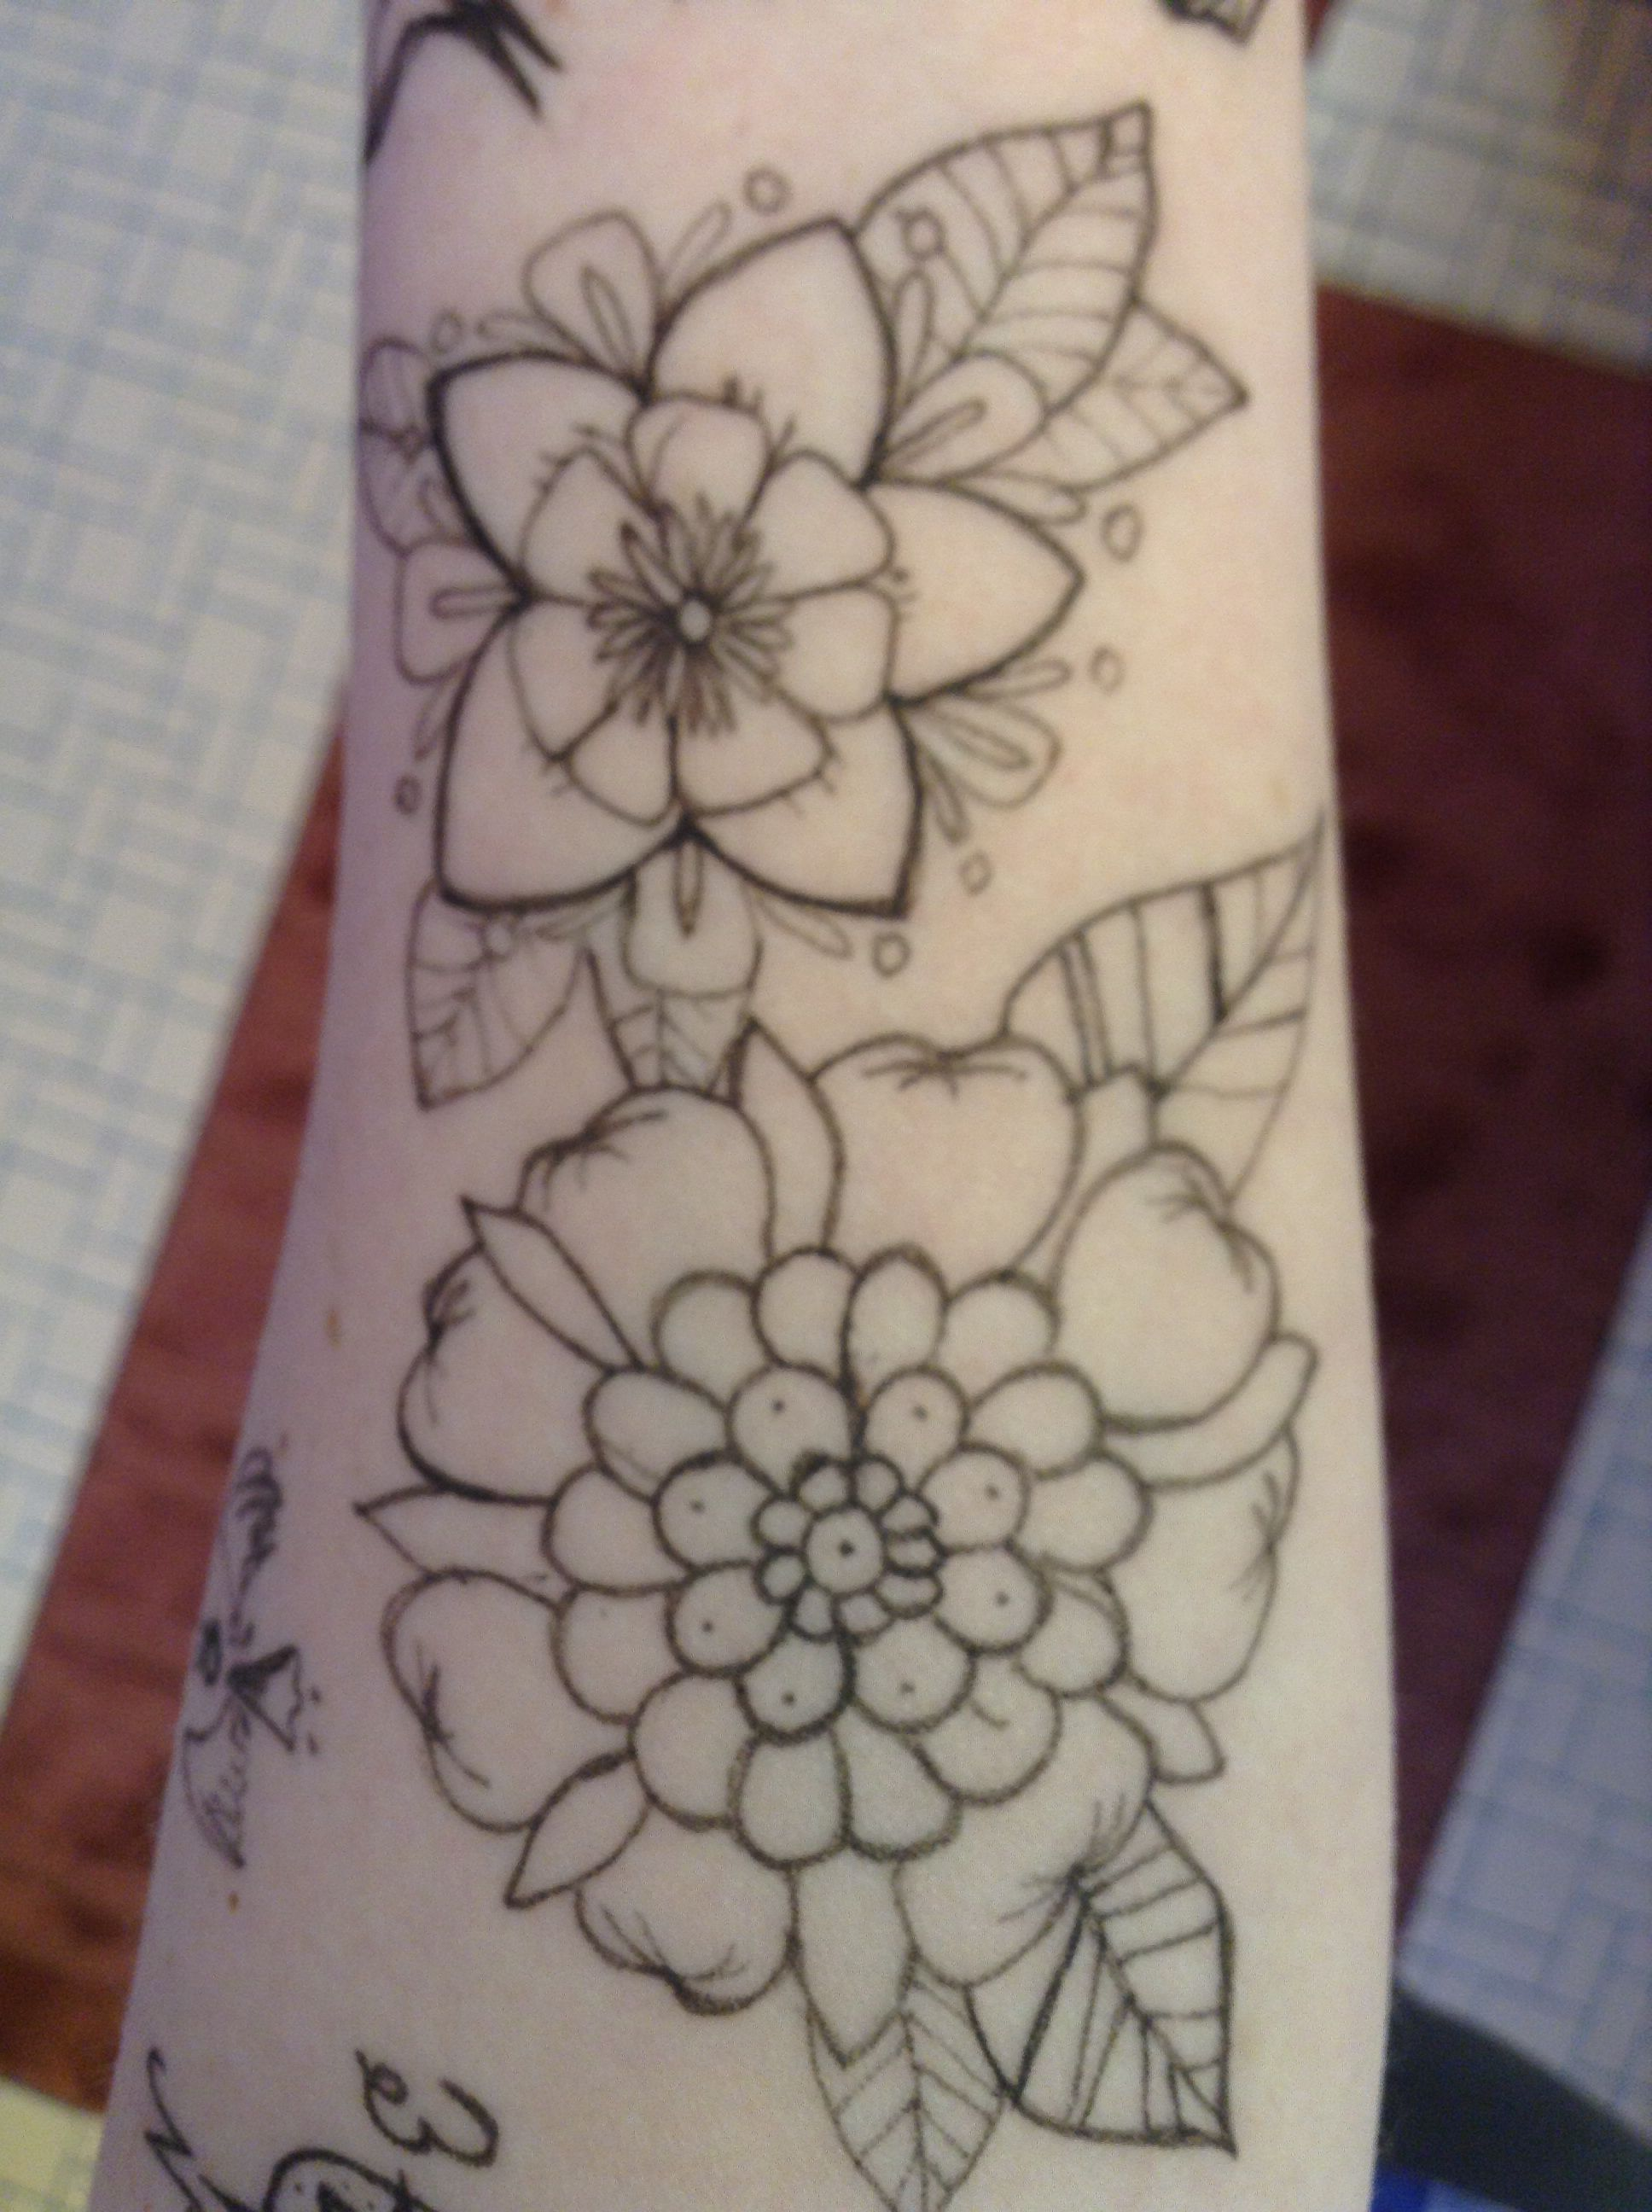 Doodles on arm video